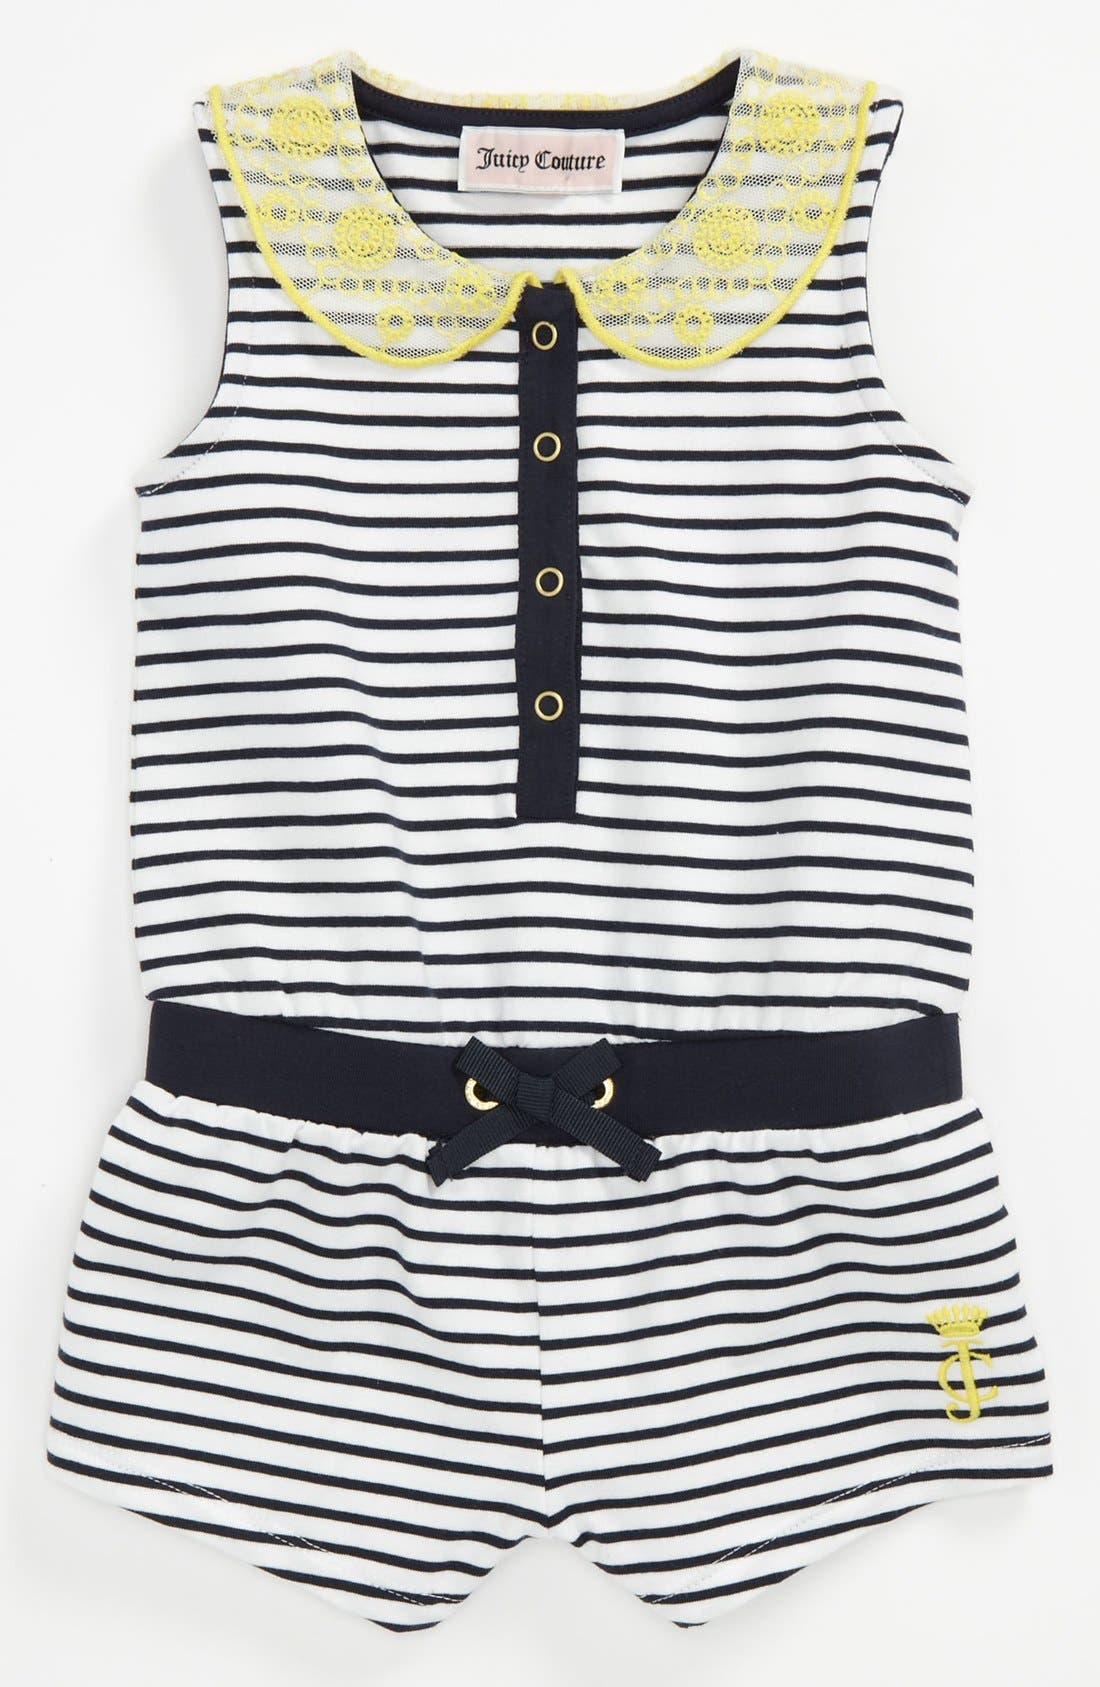 Main Image - Juicy Couture Stripe Coveralls (Baby)